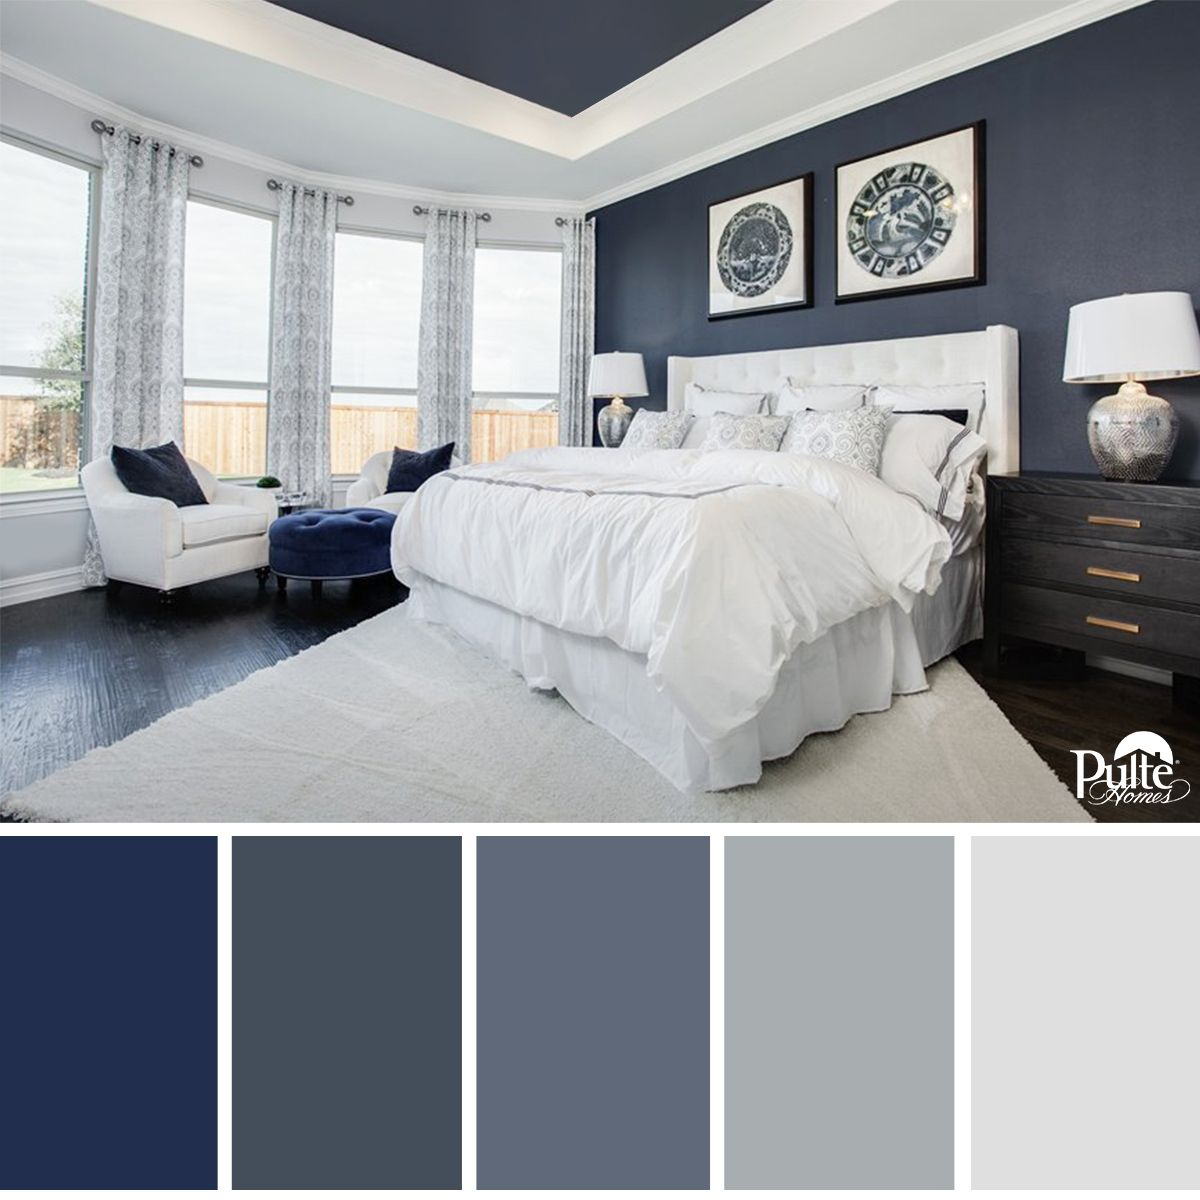 Room Colors Bedroom This Bedroom Design Has The Right Idea The Rich Blue Color